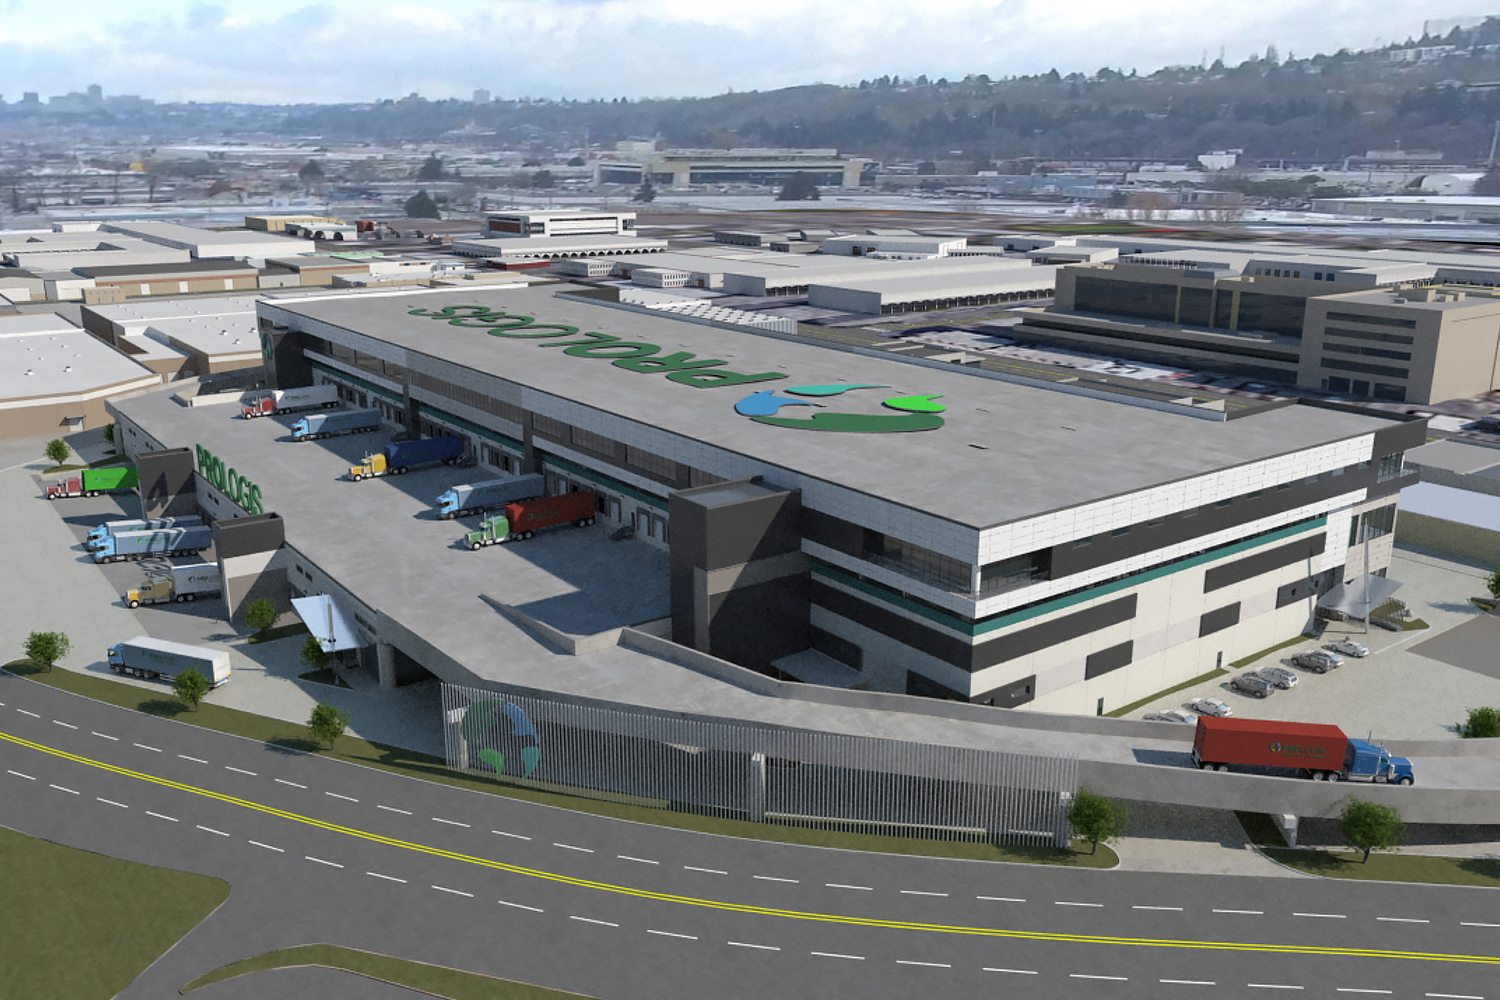 Construction starts on unusual Seattle warehouse project called Georgetown Crossroads